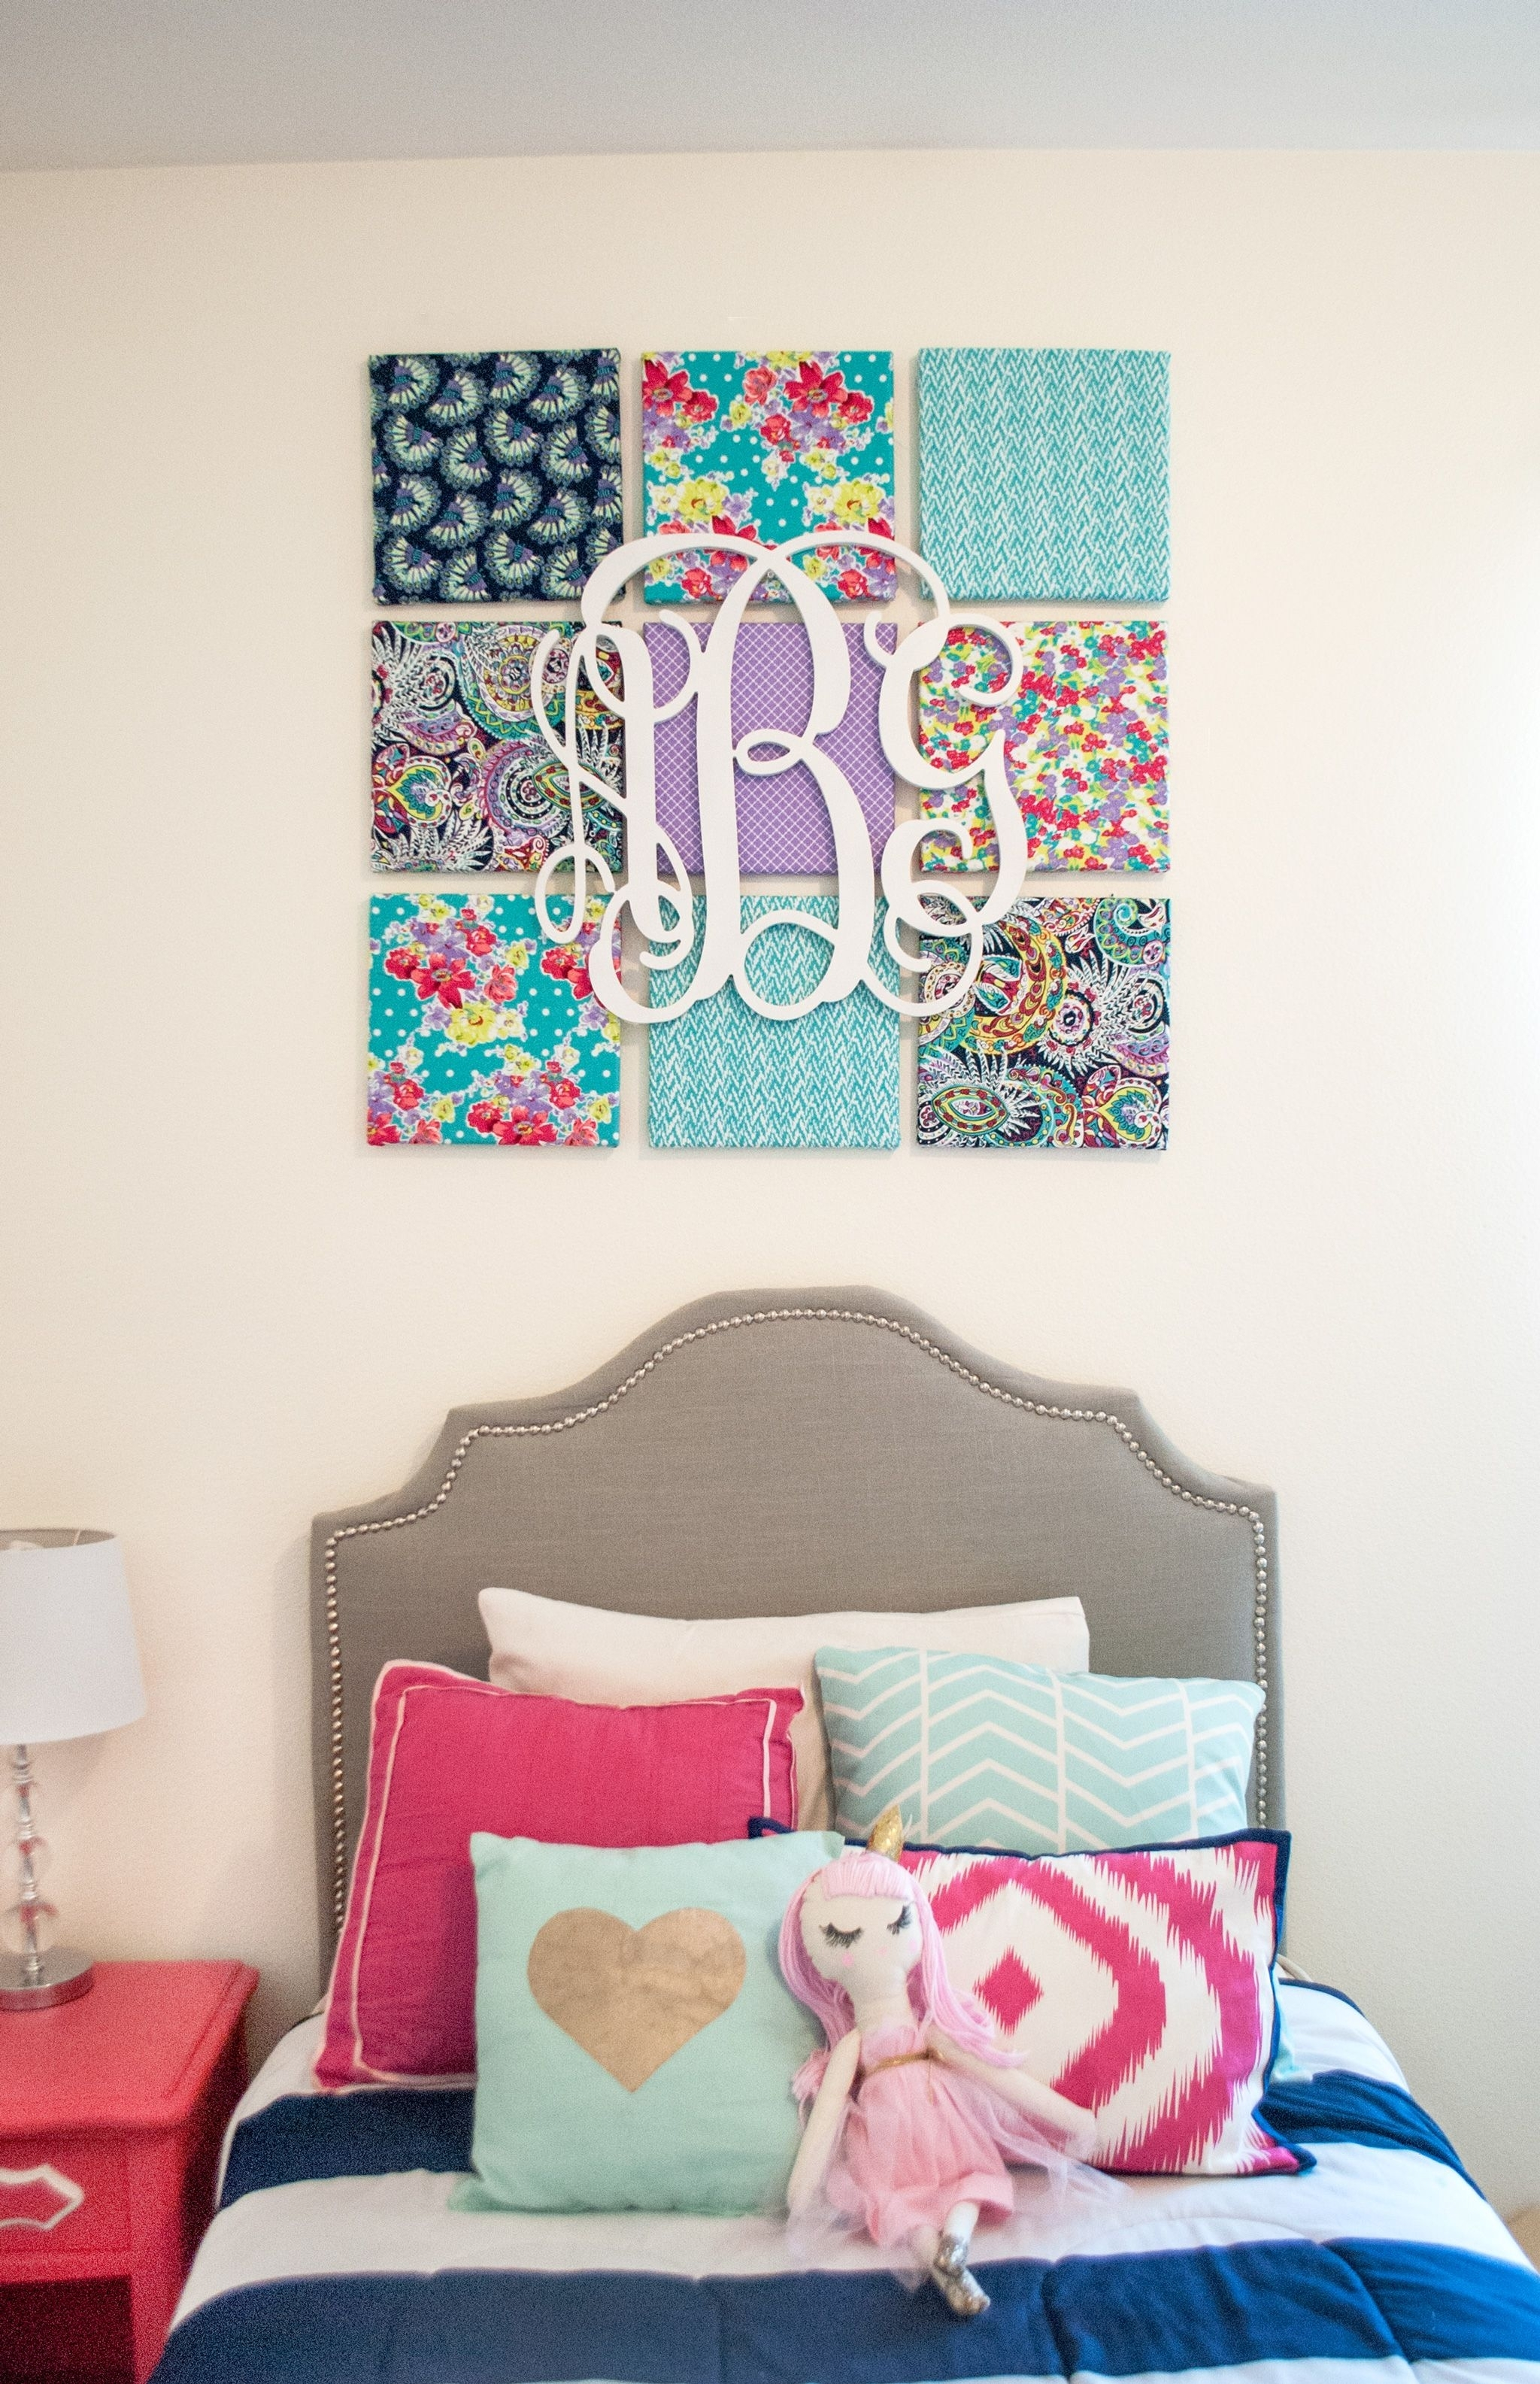 Diy Fabric Wall Art | Monogram Wall, Kids Rooms And Monograms Within Most Up To Date Fabric Decoupage Wall Art (View 7 of 15)